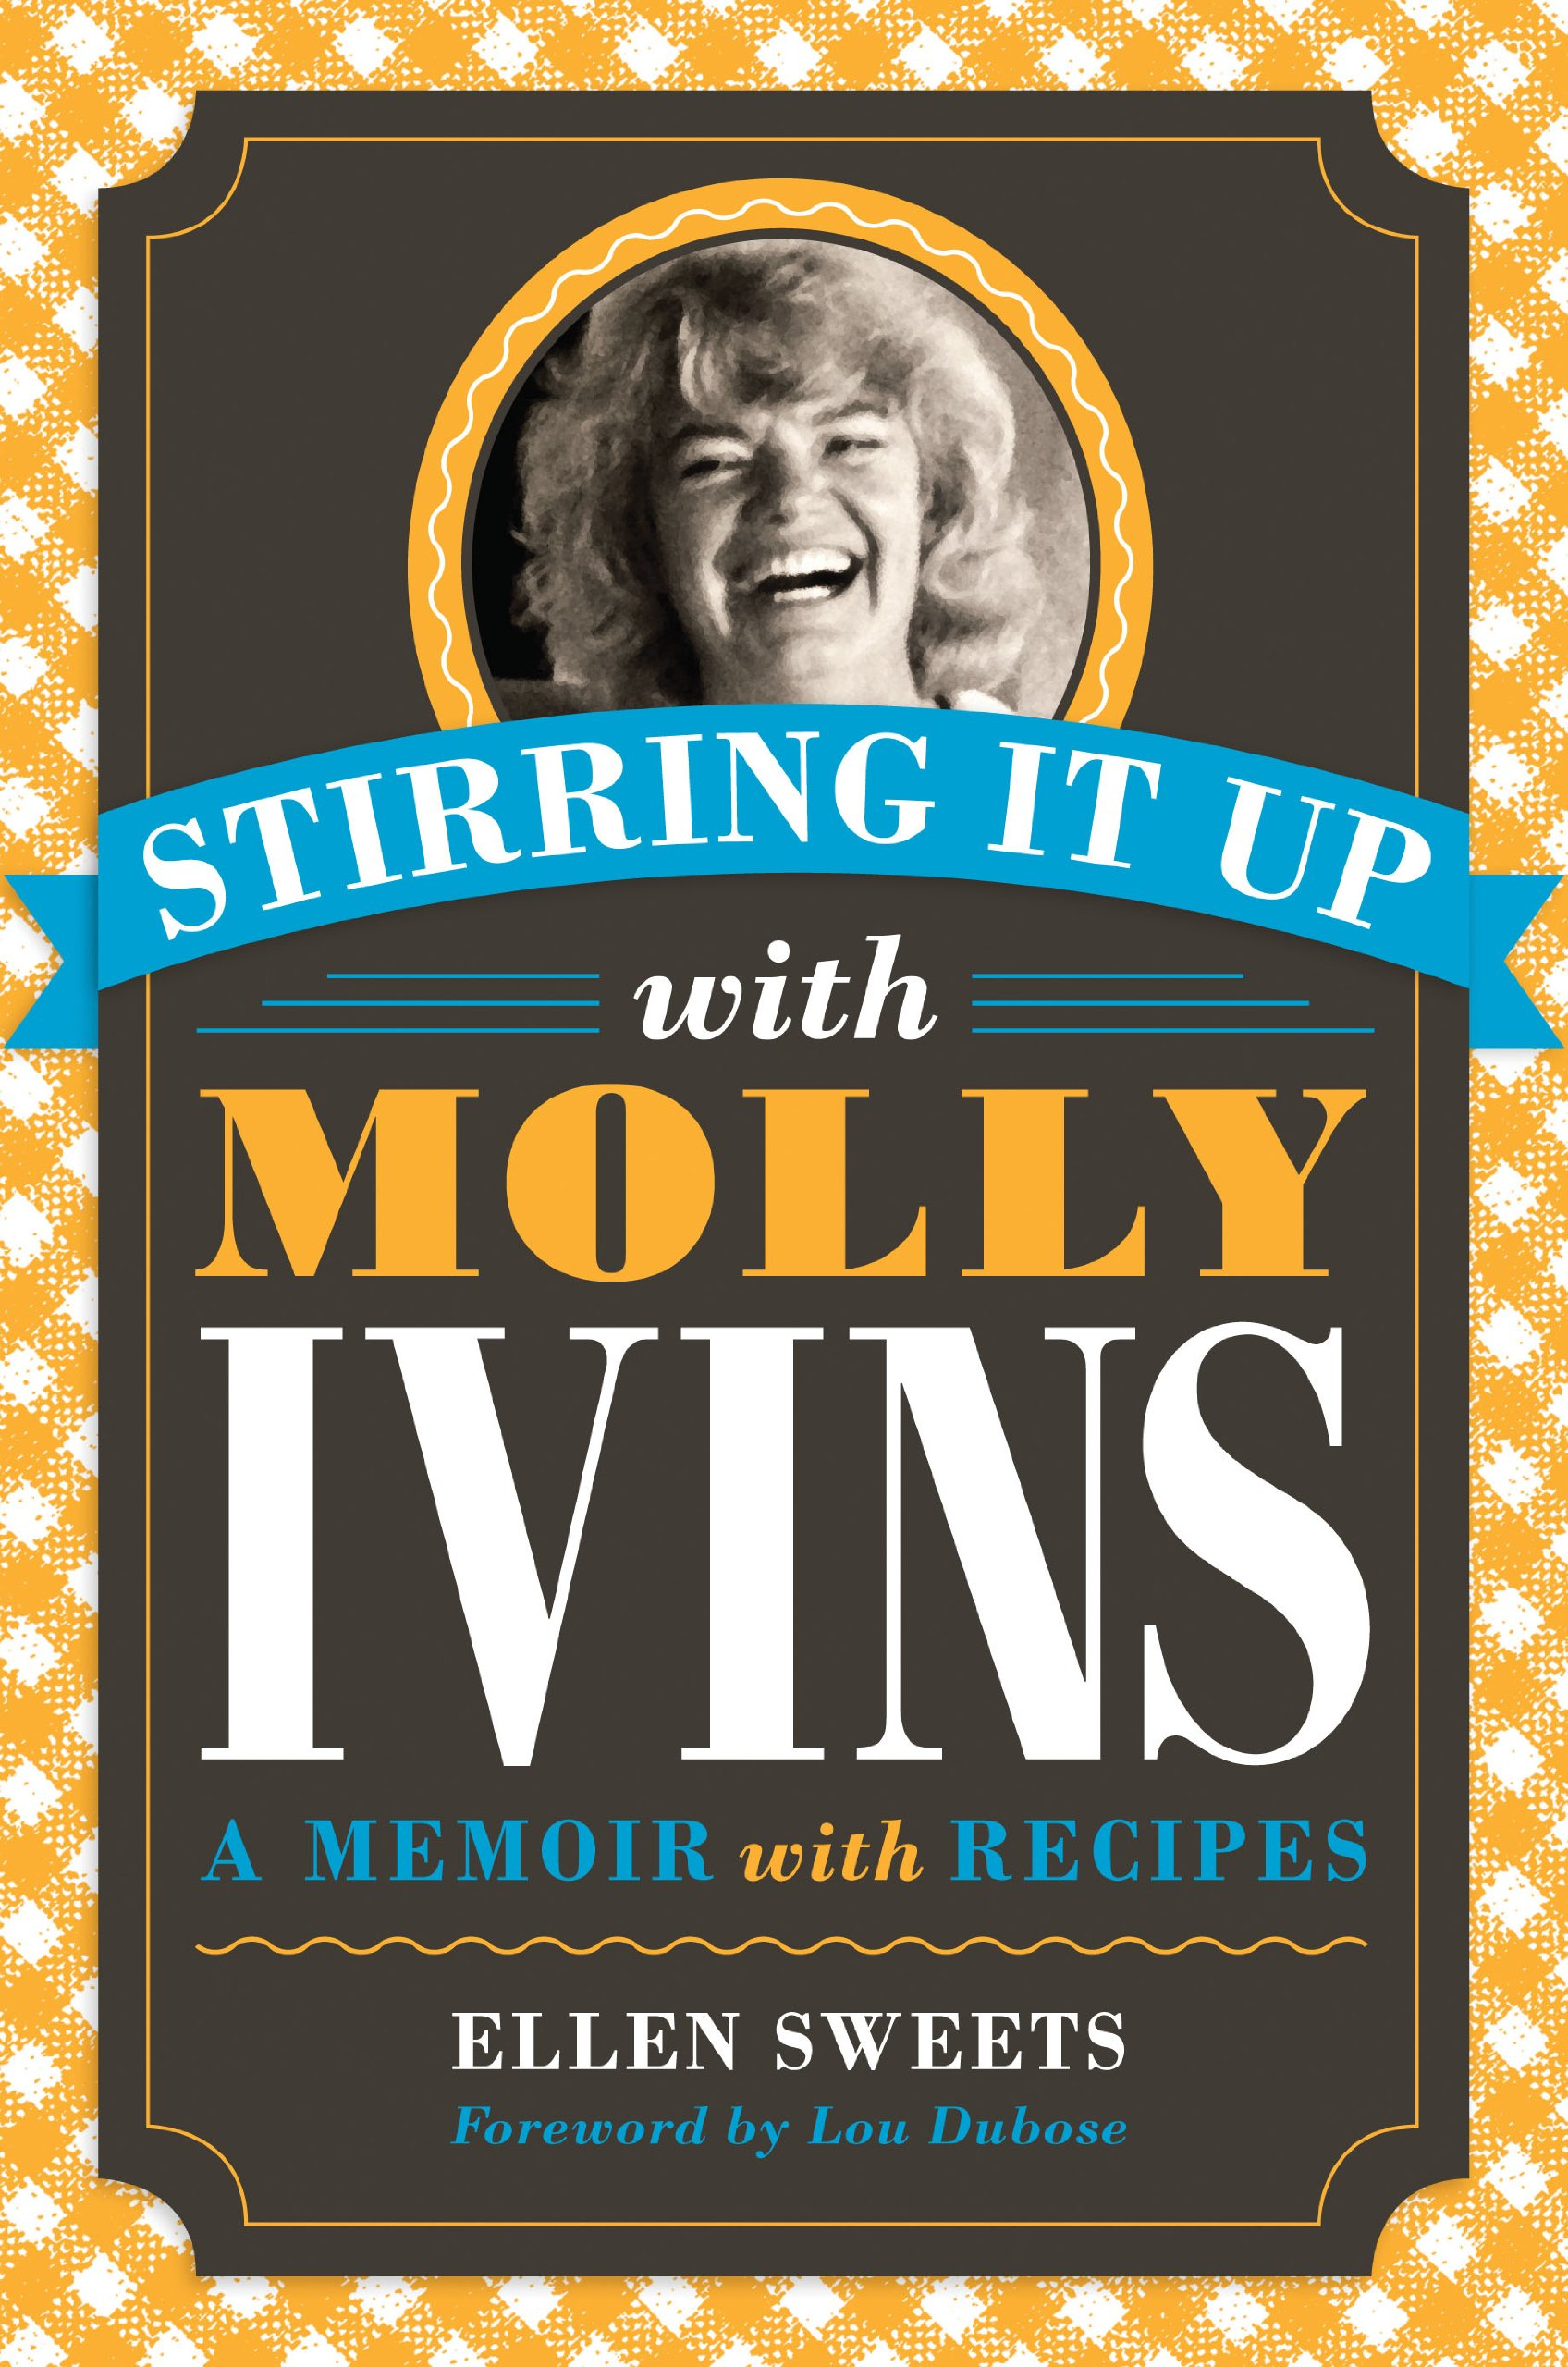 Stirring It Up with Molly Ivins: A Memoir with Recipes PDF